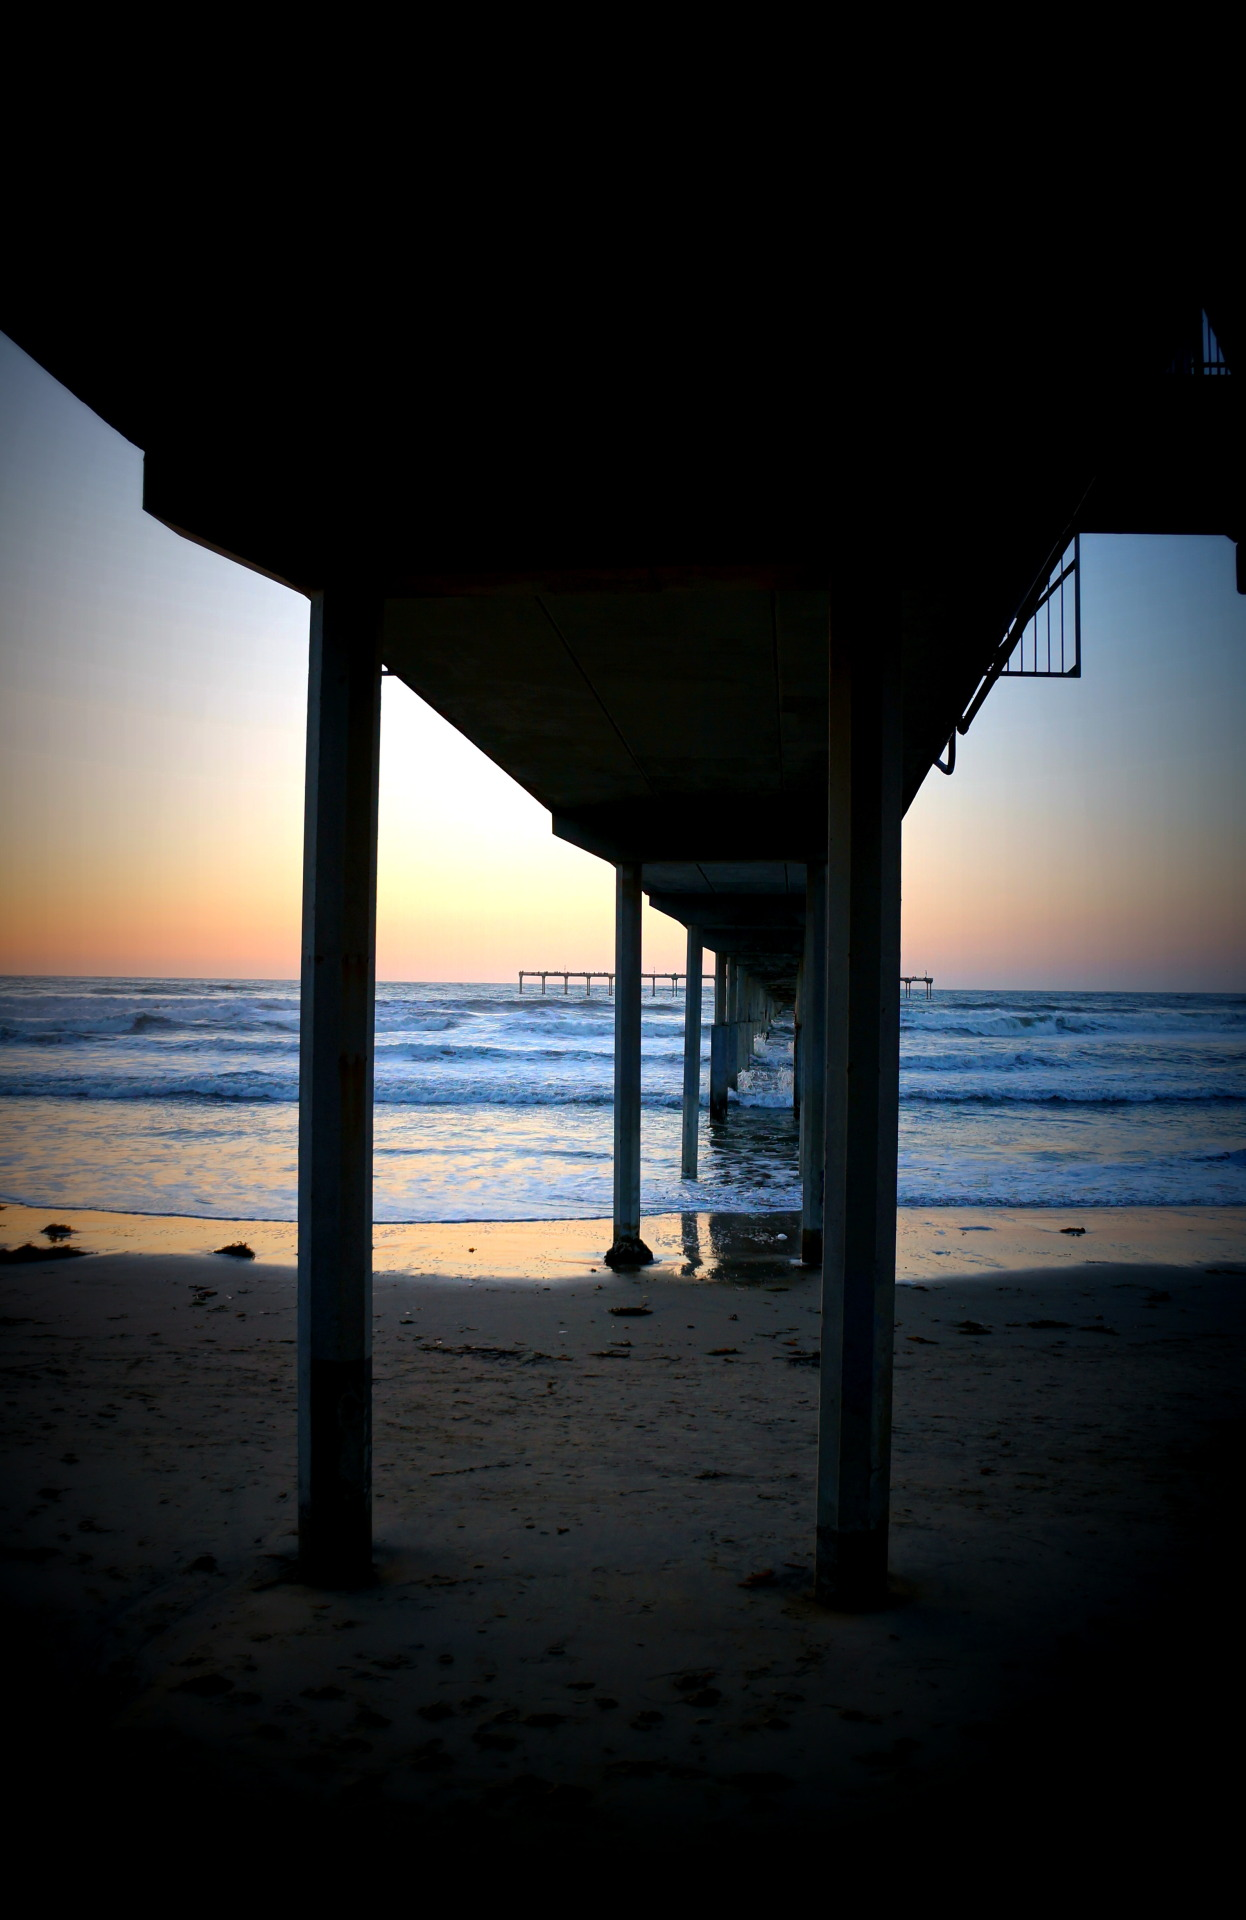 Pier at Sunset. Ocean Beach, San Diego, CA